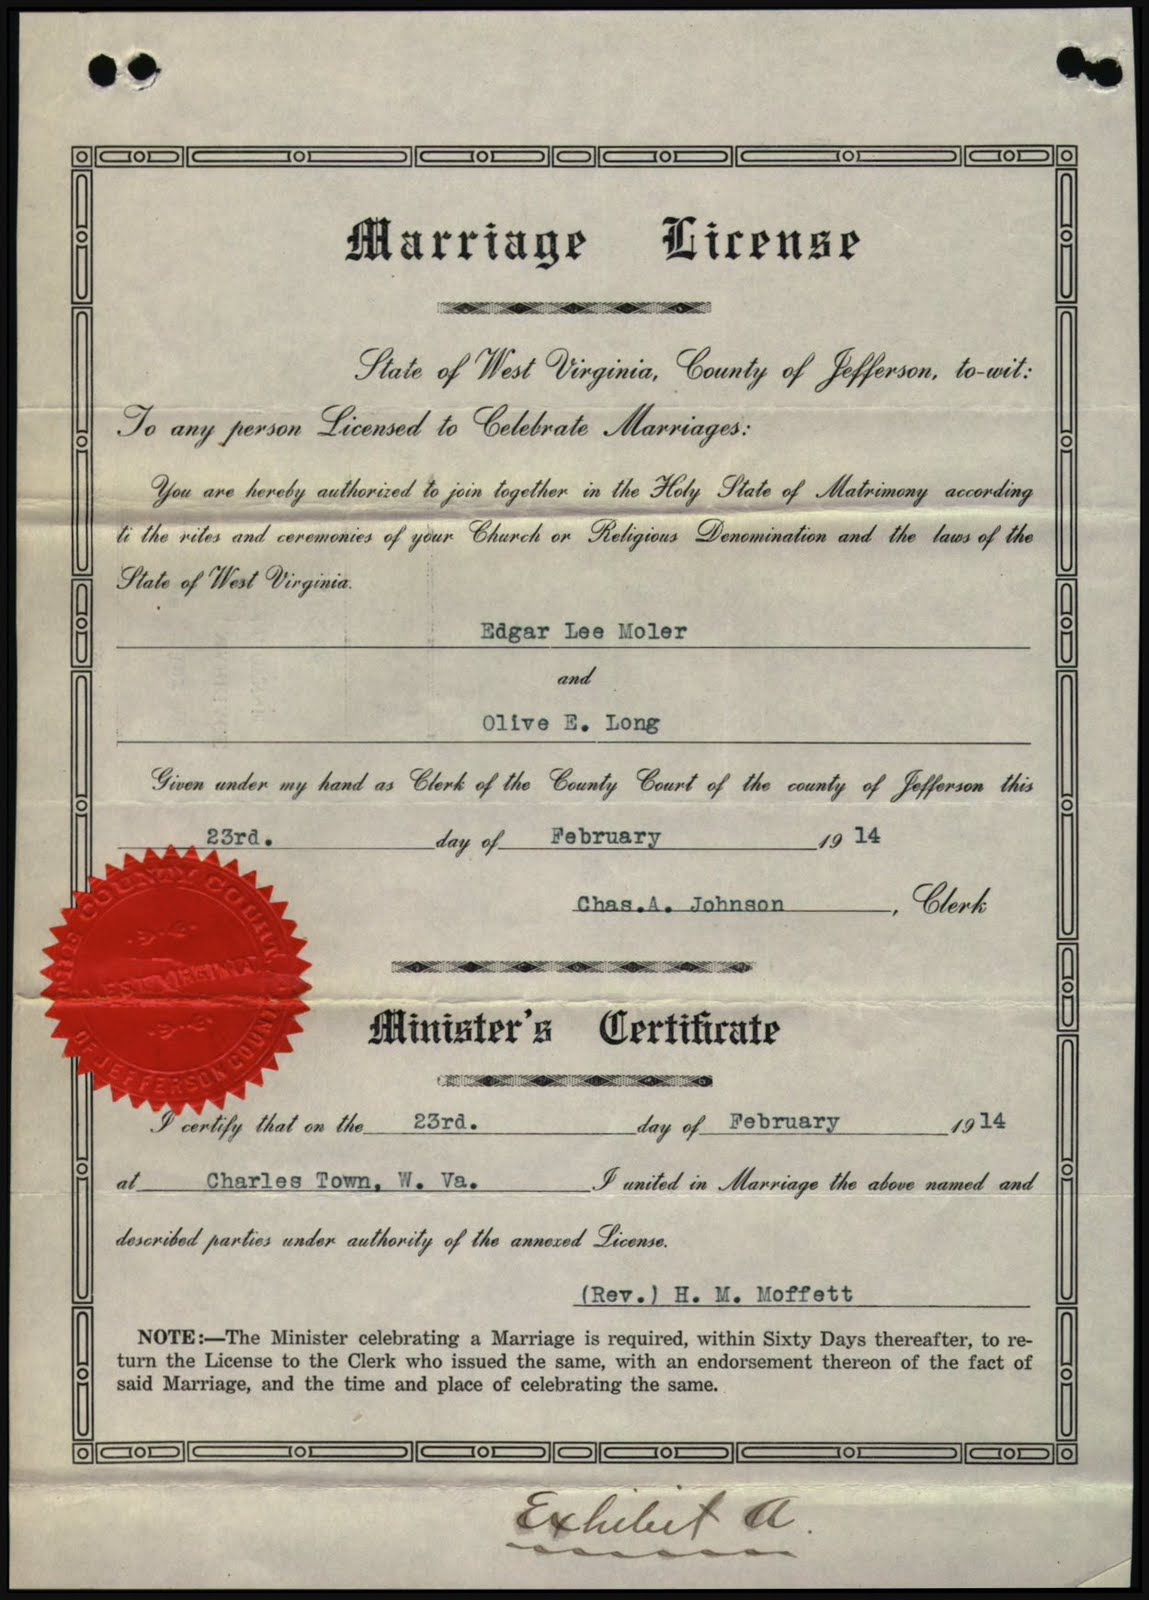 Prince William County Genealogy Marriage License Edgar Lee Moler